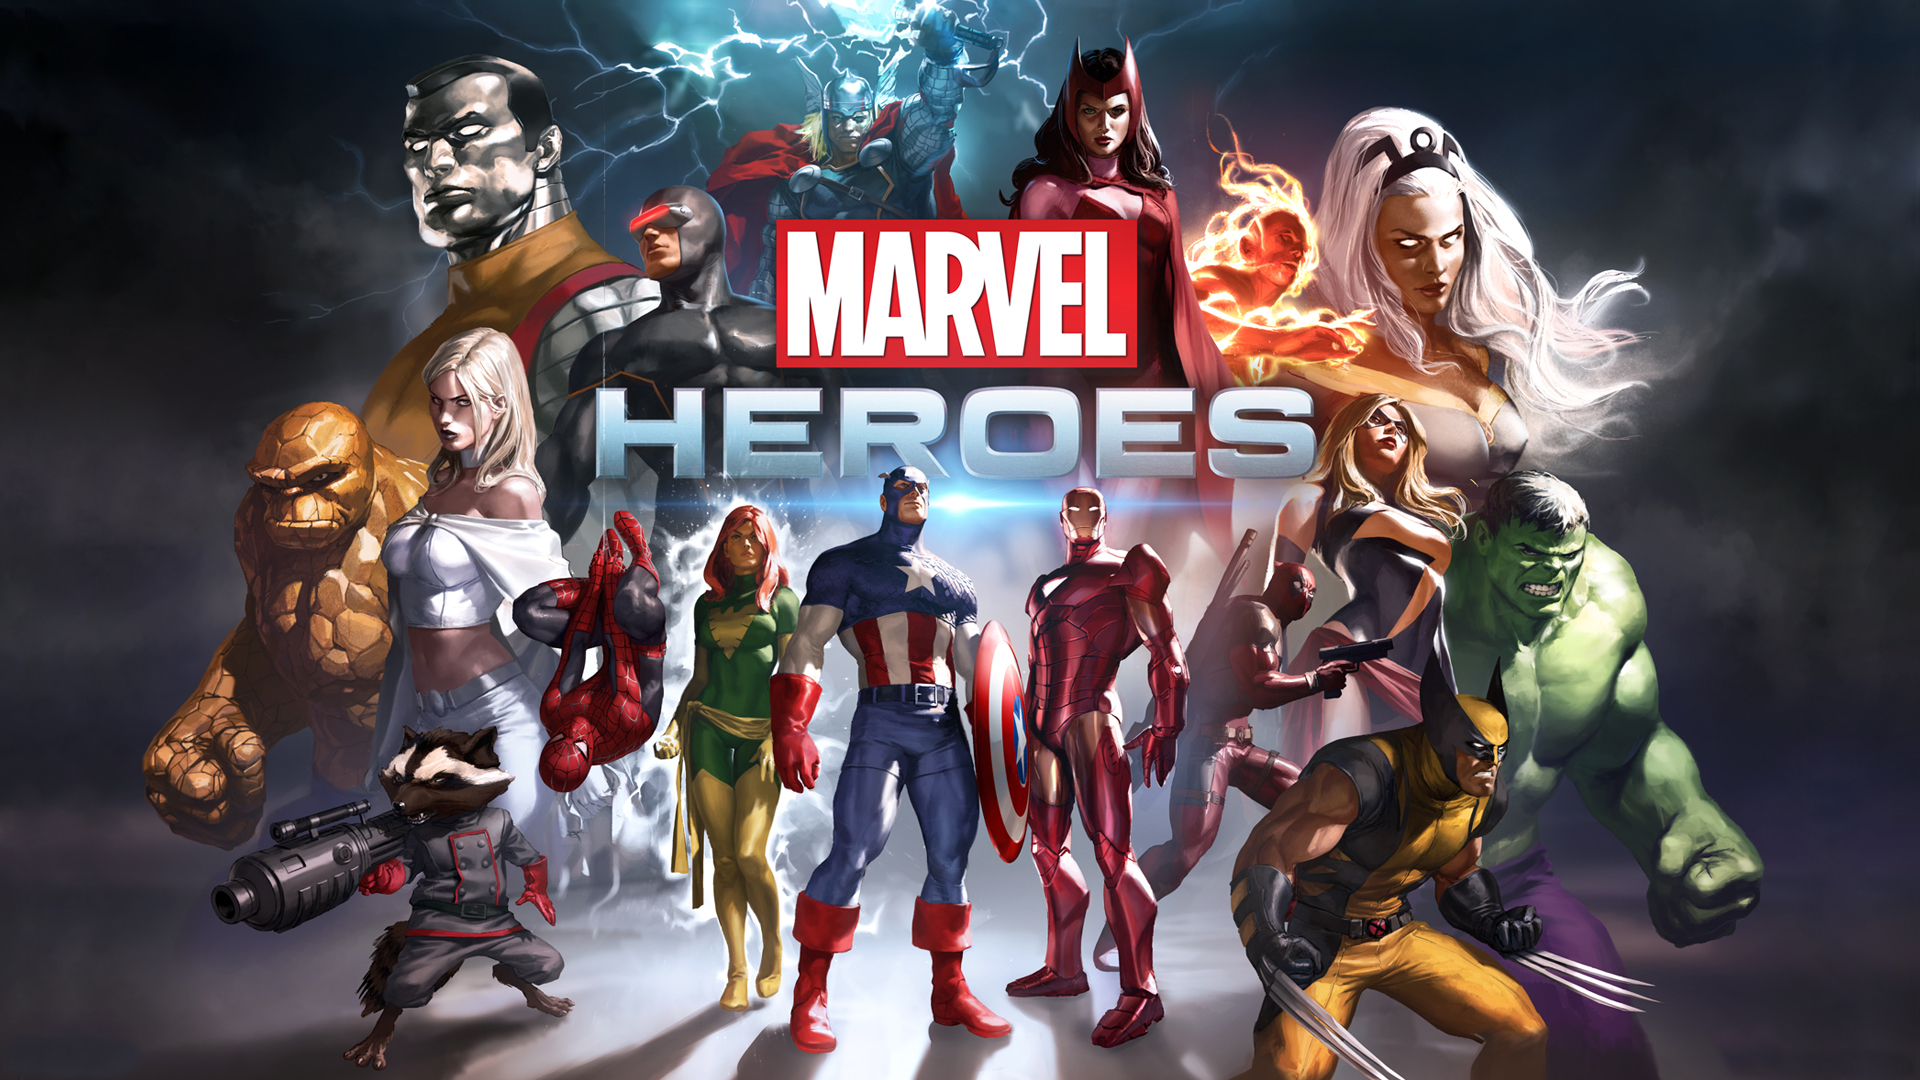 HD Wallpapers Marvel Heroes Game